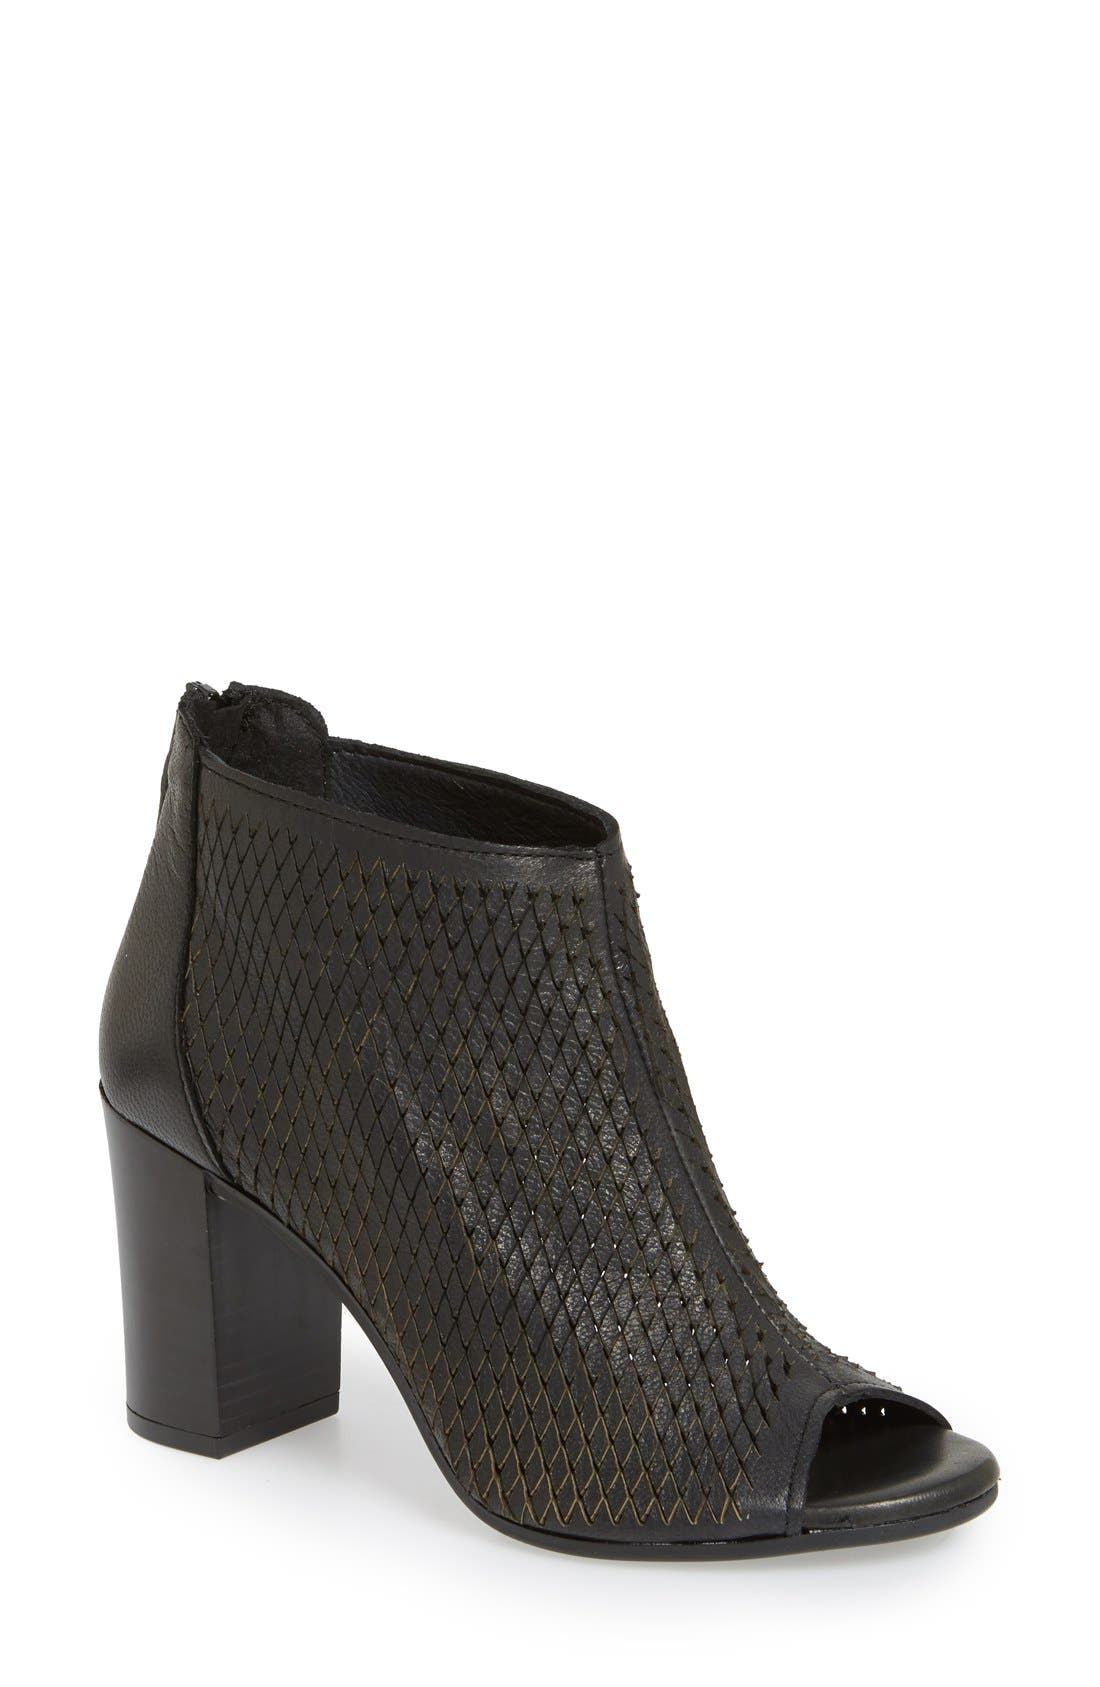 Alternate Image 1 Selected - Kenneth Cole New York 'Nina' Open Toe Bootie (Women)